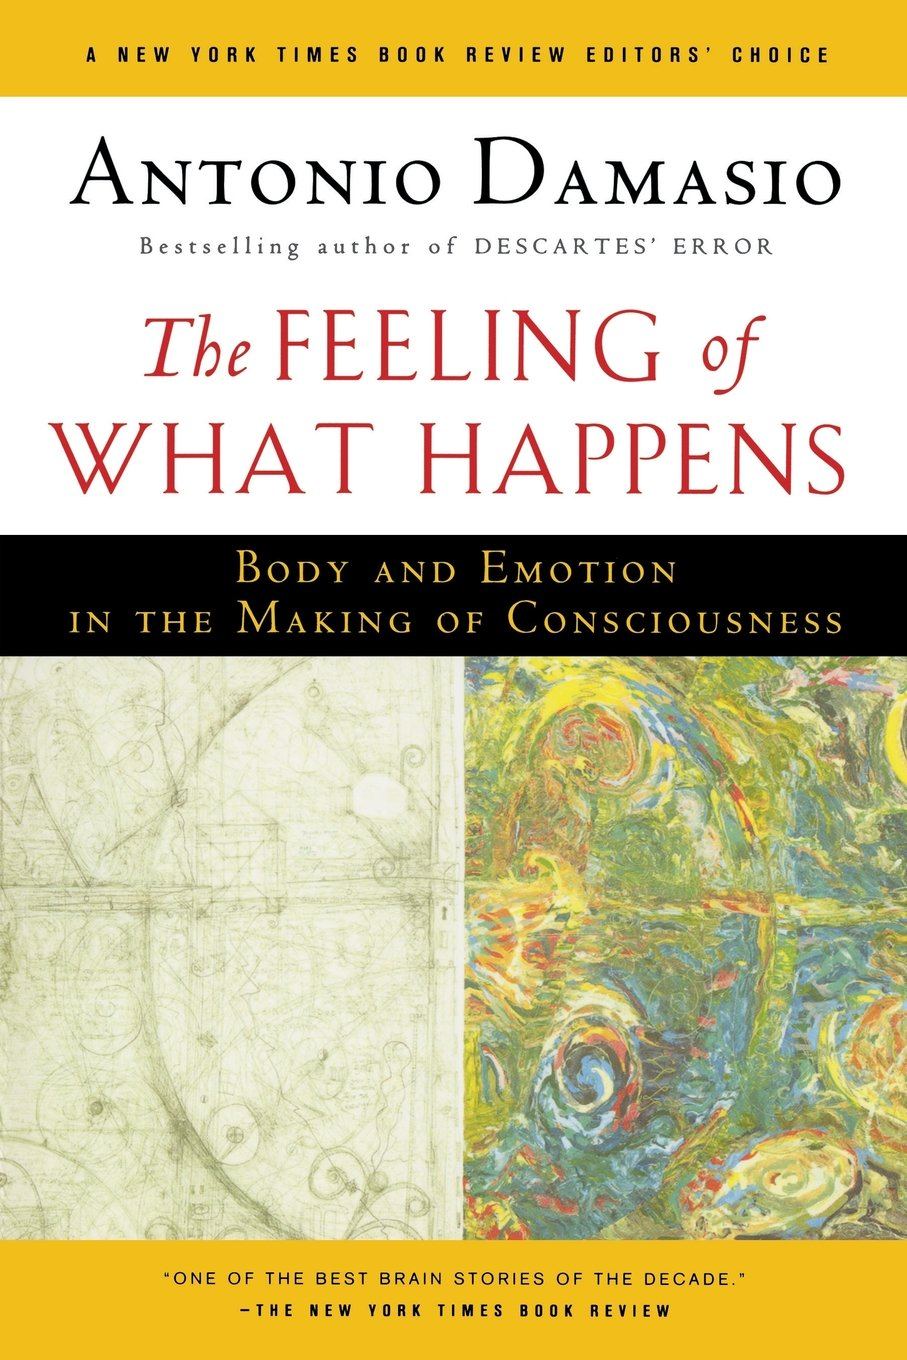 The Feeling of What Happens: Body and Emotion in the Making